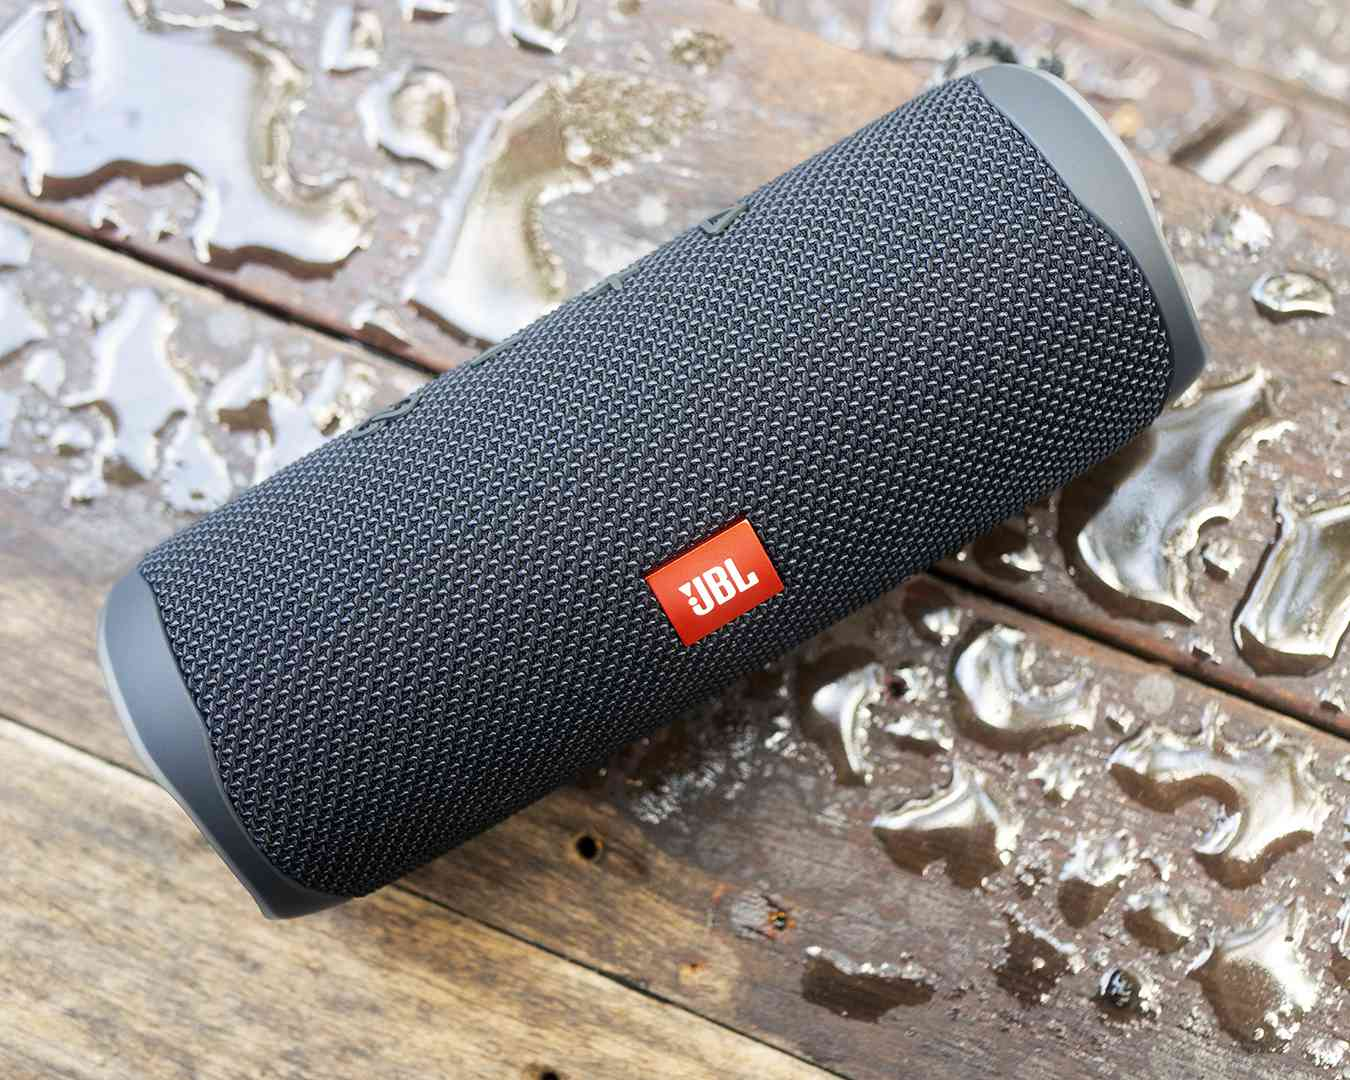 The 10 Best Portable Speakers For Iphone Ipod Of 2021